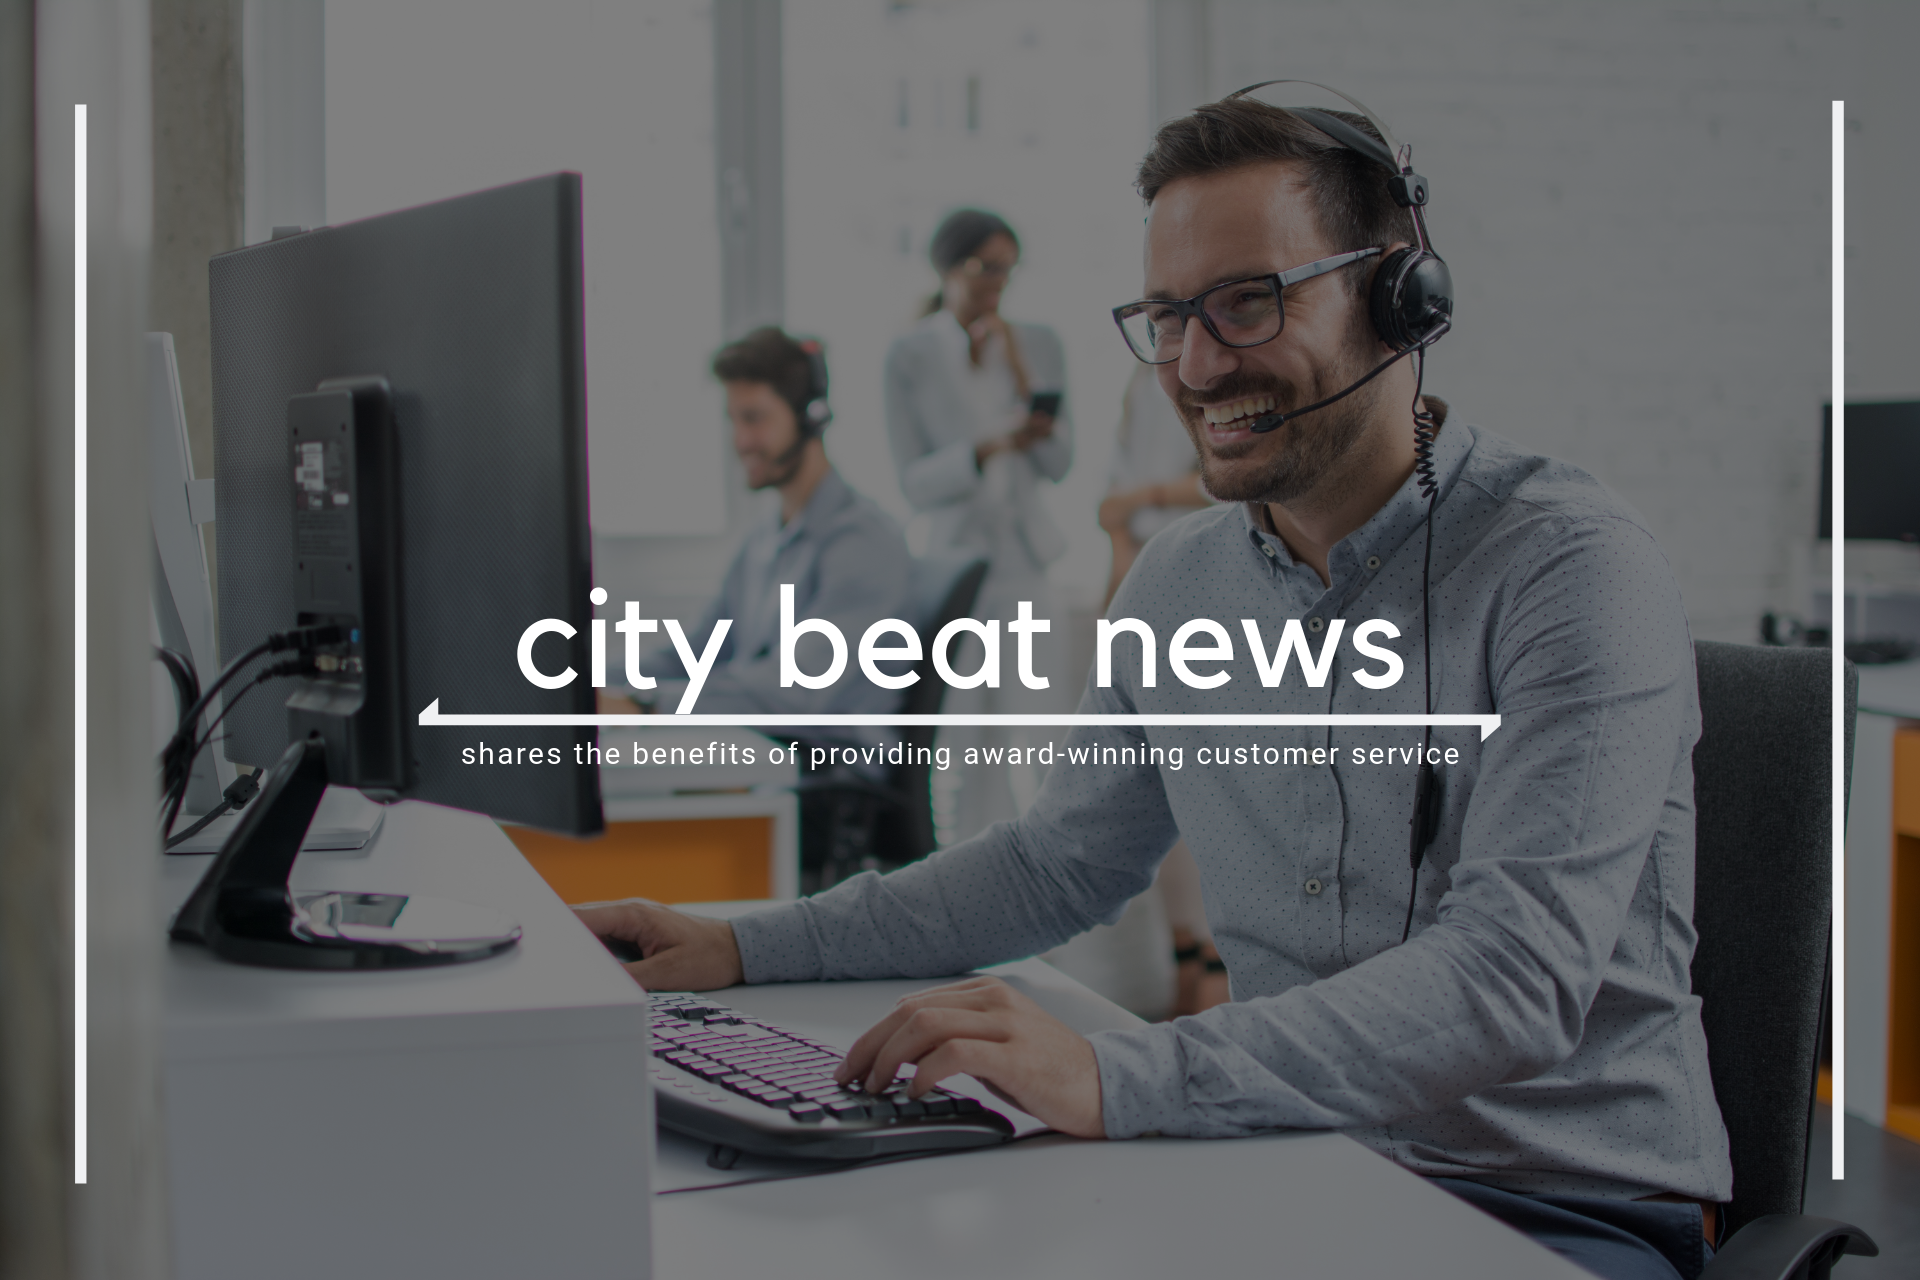 City Beat News Shares 3 Benefits Of Providing Award-Winning Customer Service